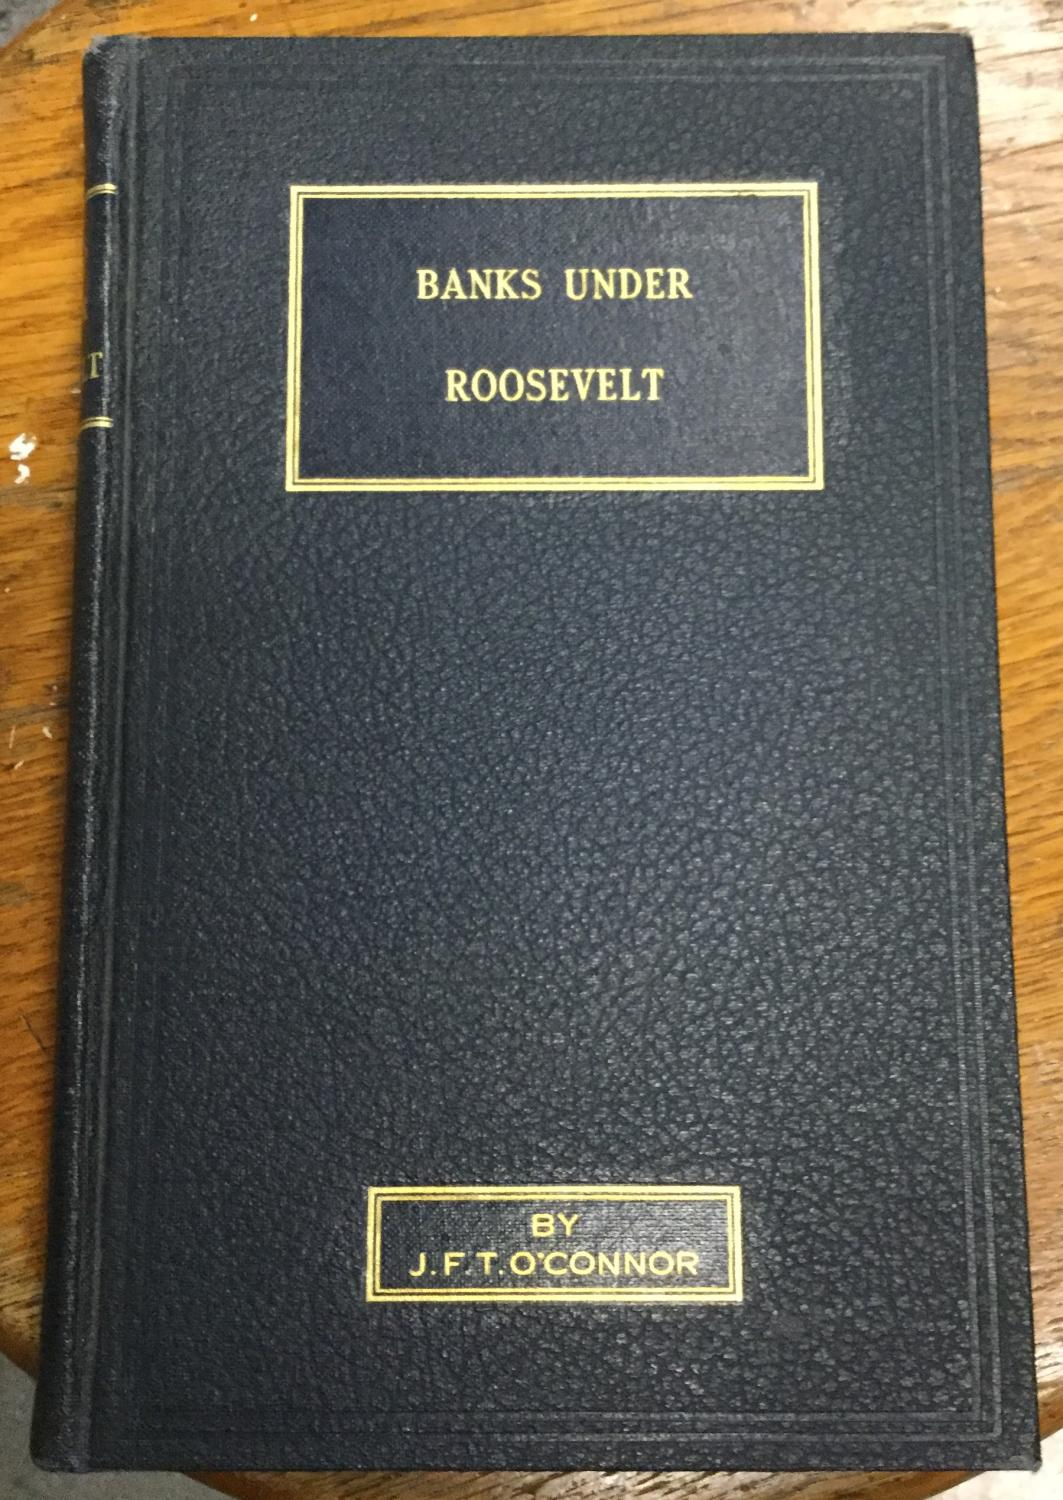 Banking_Crisis_and_Recovery_Under_The_Roosevelt_Administration_OConnor_JFT_Very_Good_Hardcover